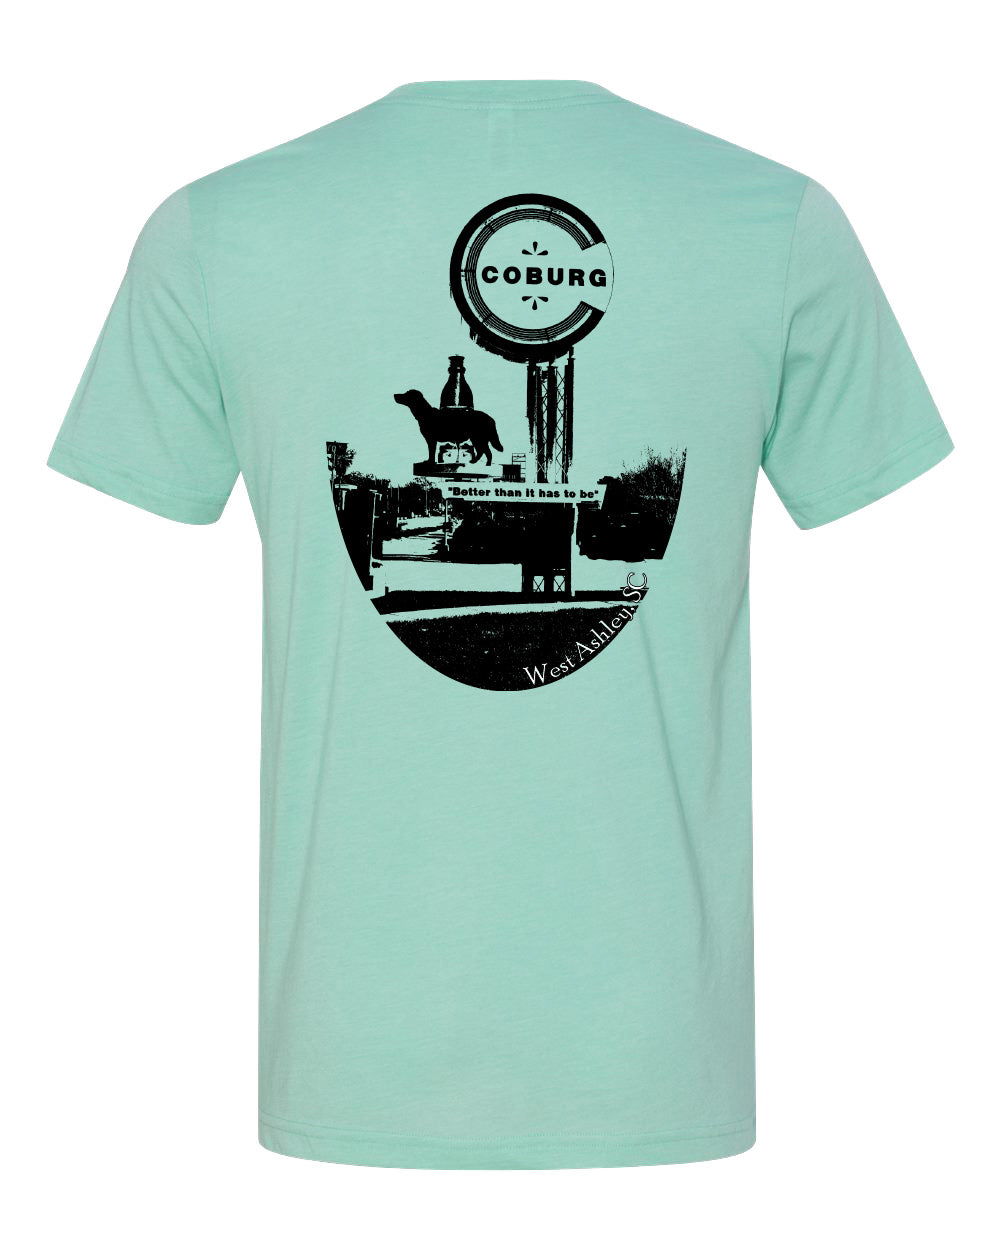 West Ashley Short Sleeve T-shirt